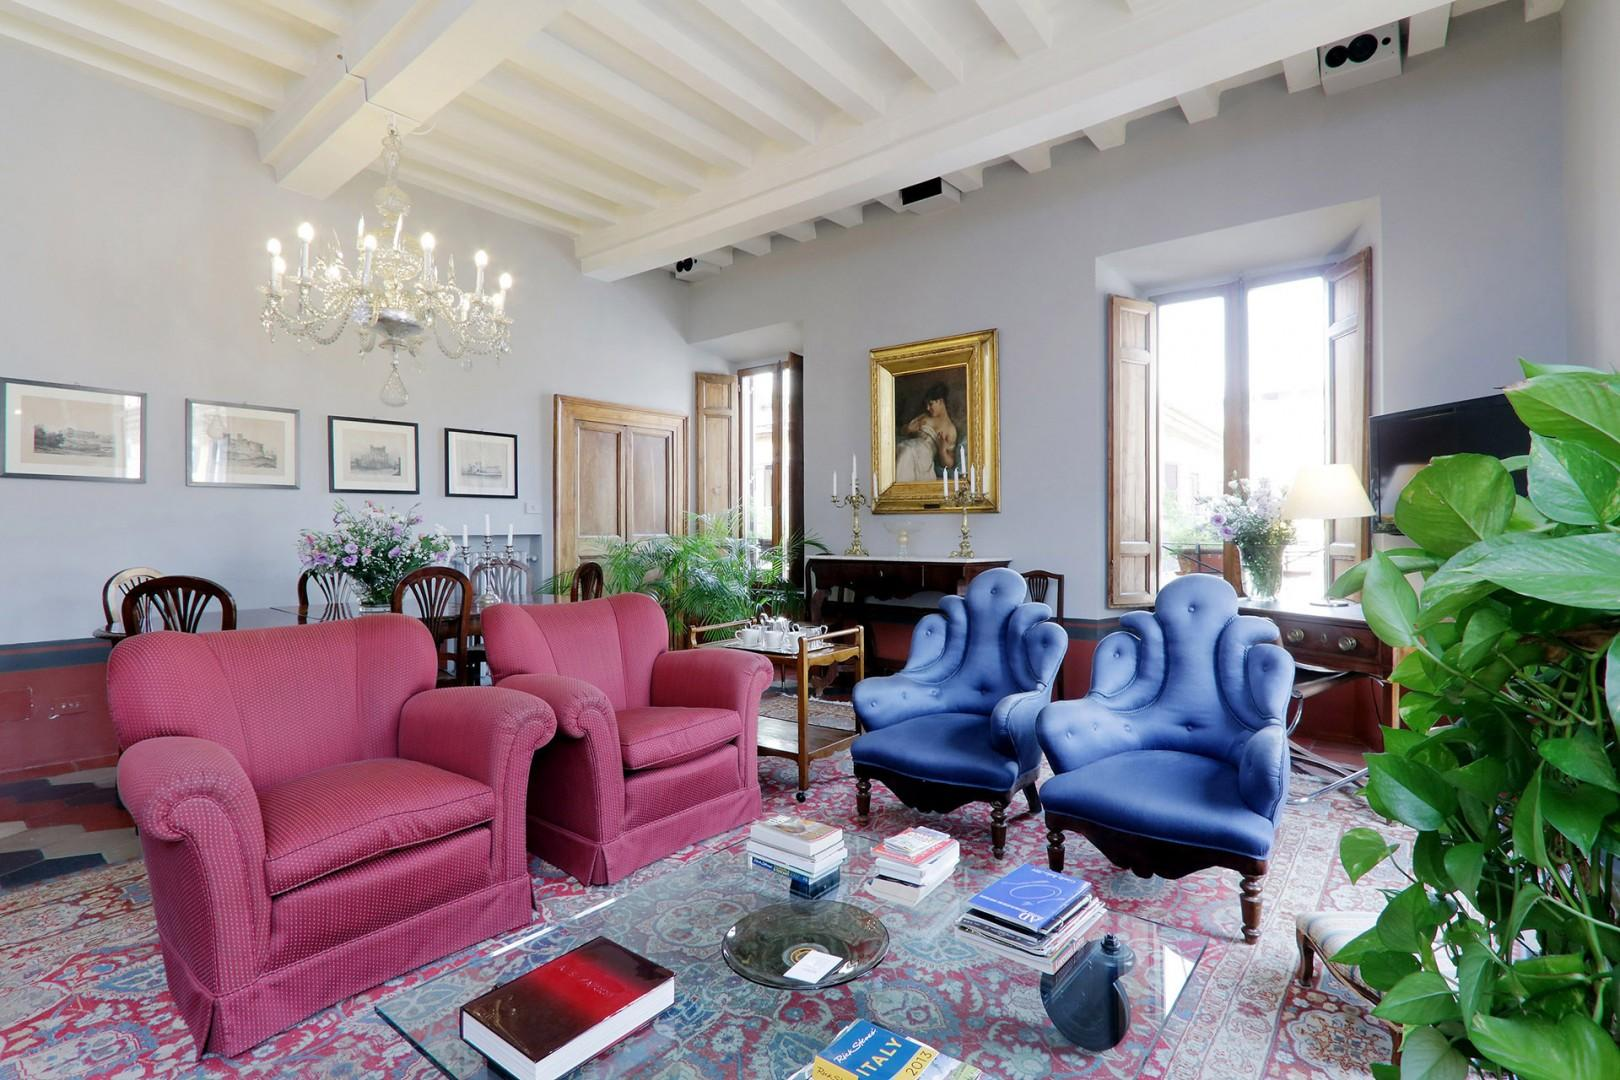 Enjoy the best that Rome has to offer, in one of the finest upscale streets in Rome's center.